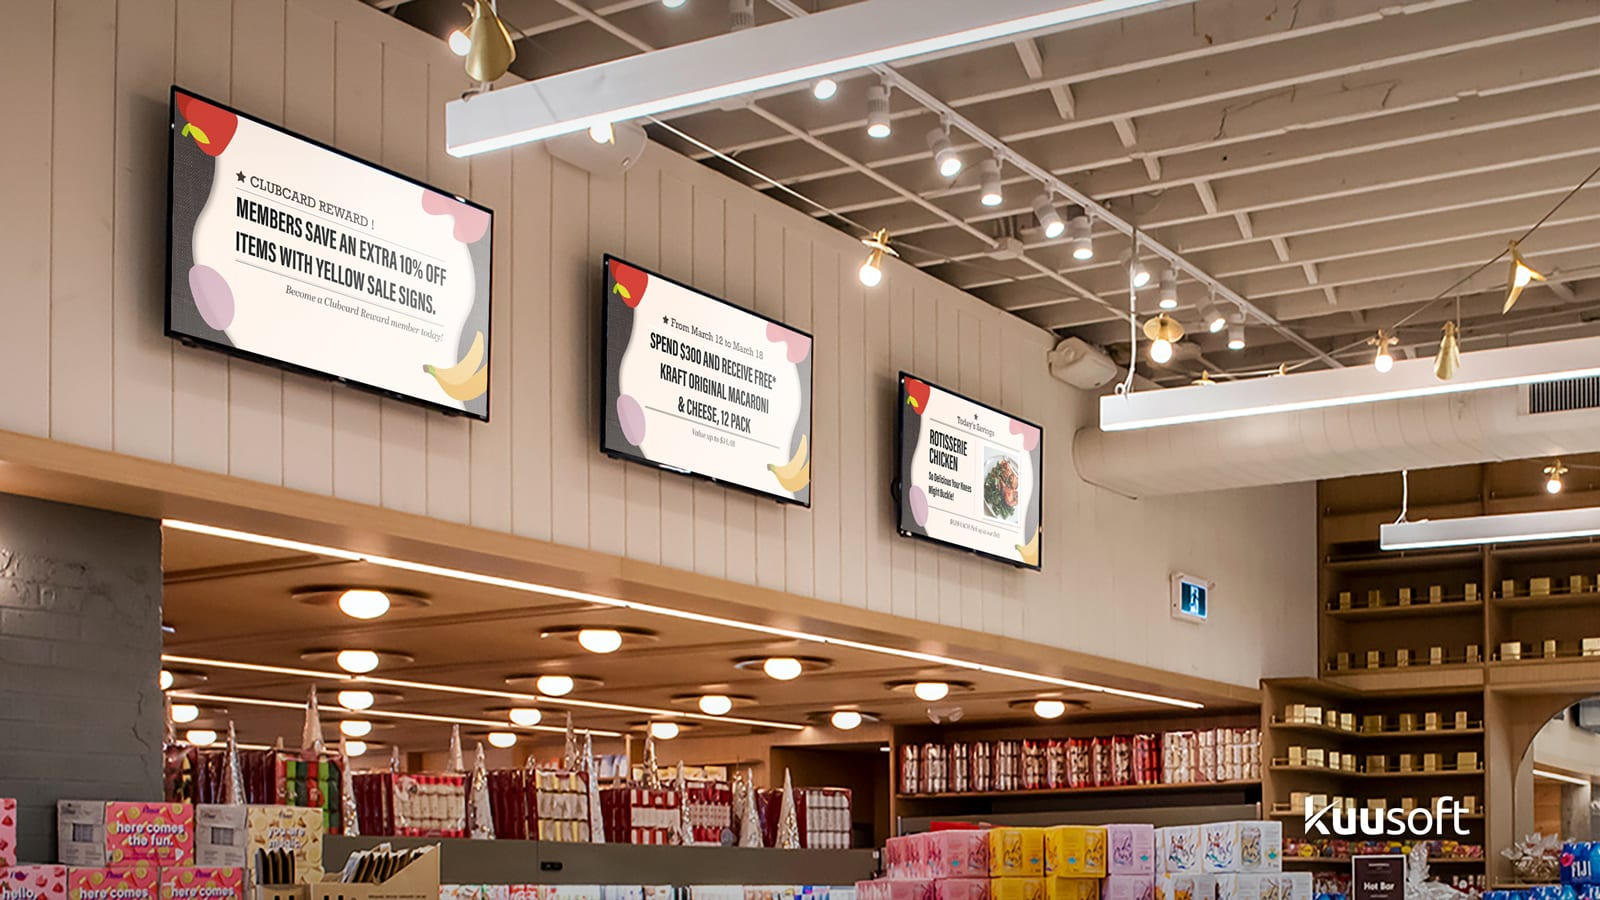 grocery store digital signage with useful information